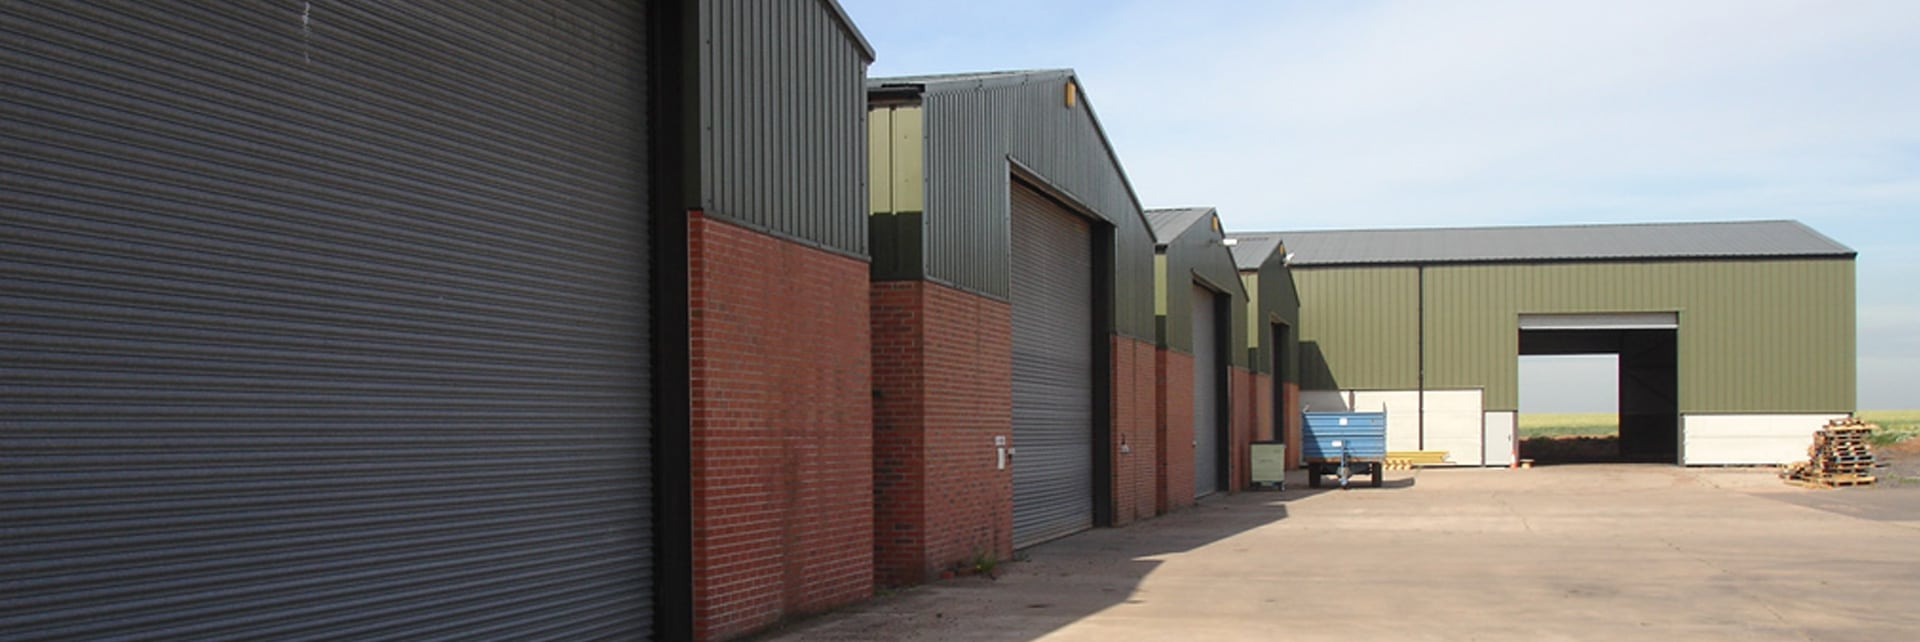 Workshop Buildings